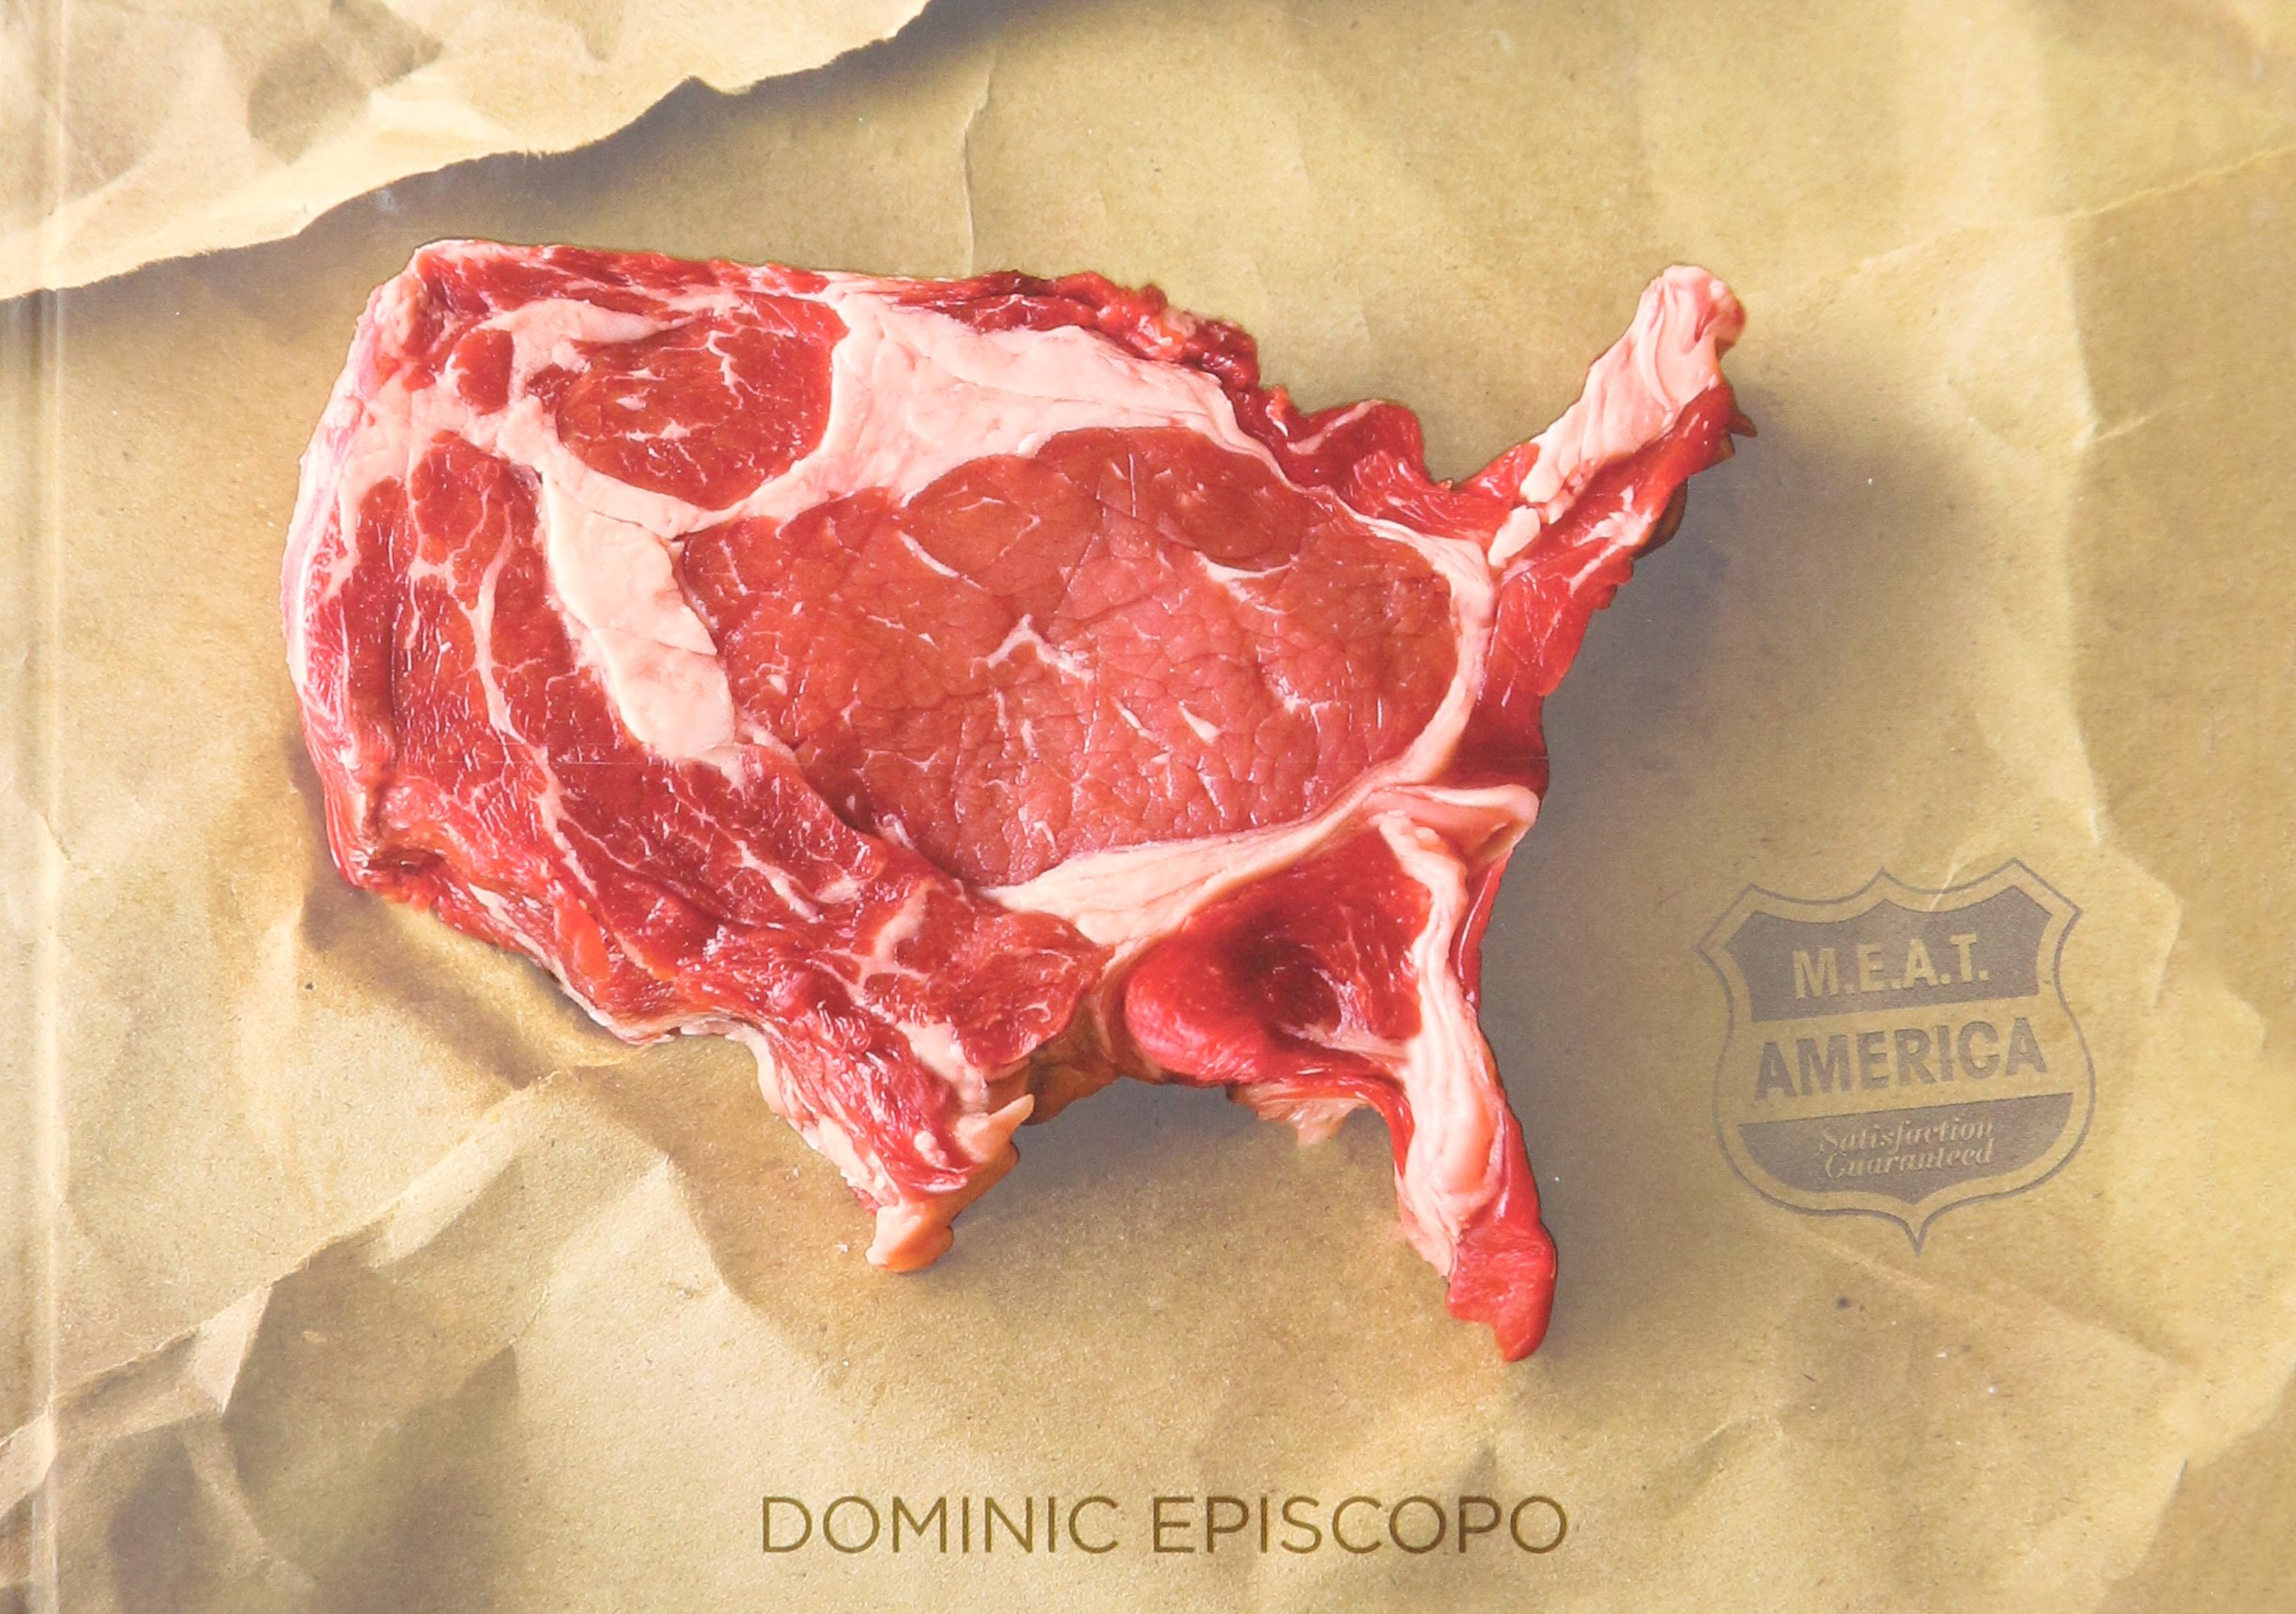 Meat America Dominic Episcopo product image